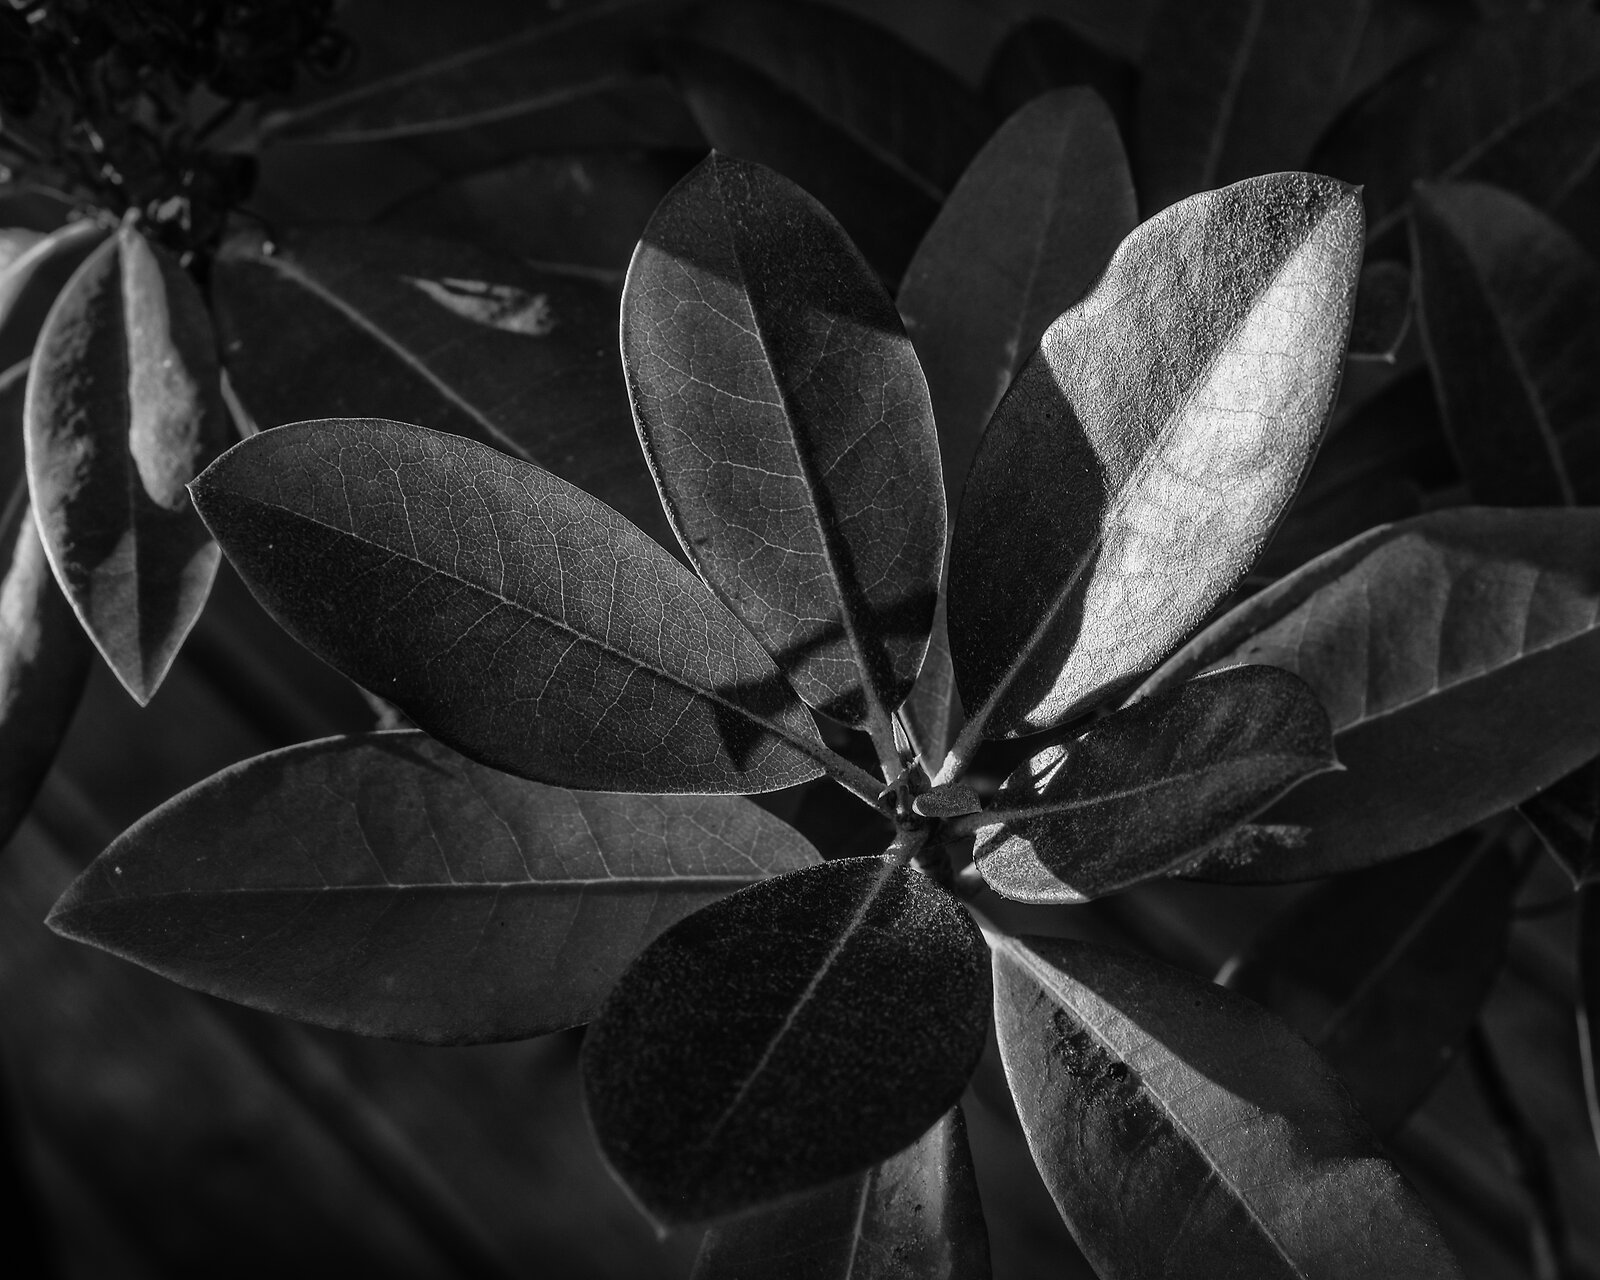 Rhod_leaves_EXt3_50mm_Dec20_BW.jpg